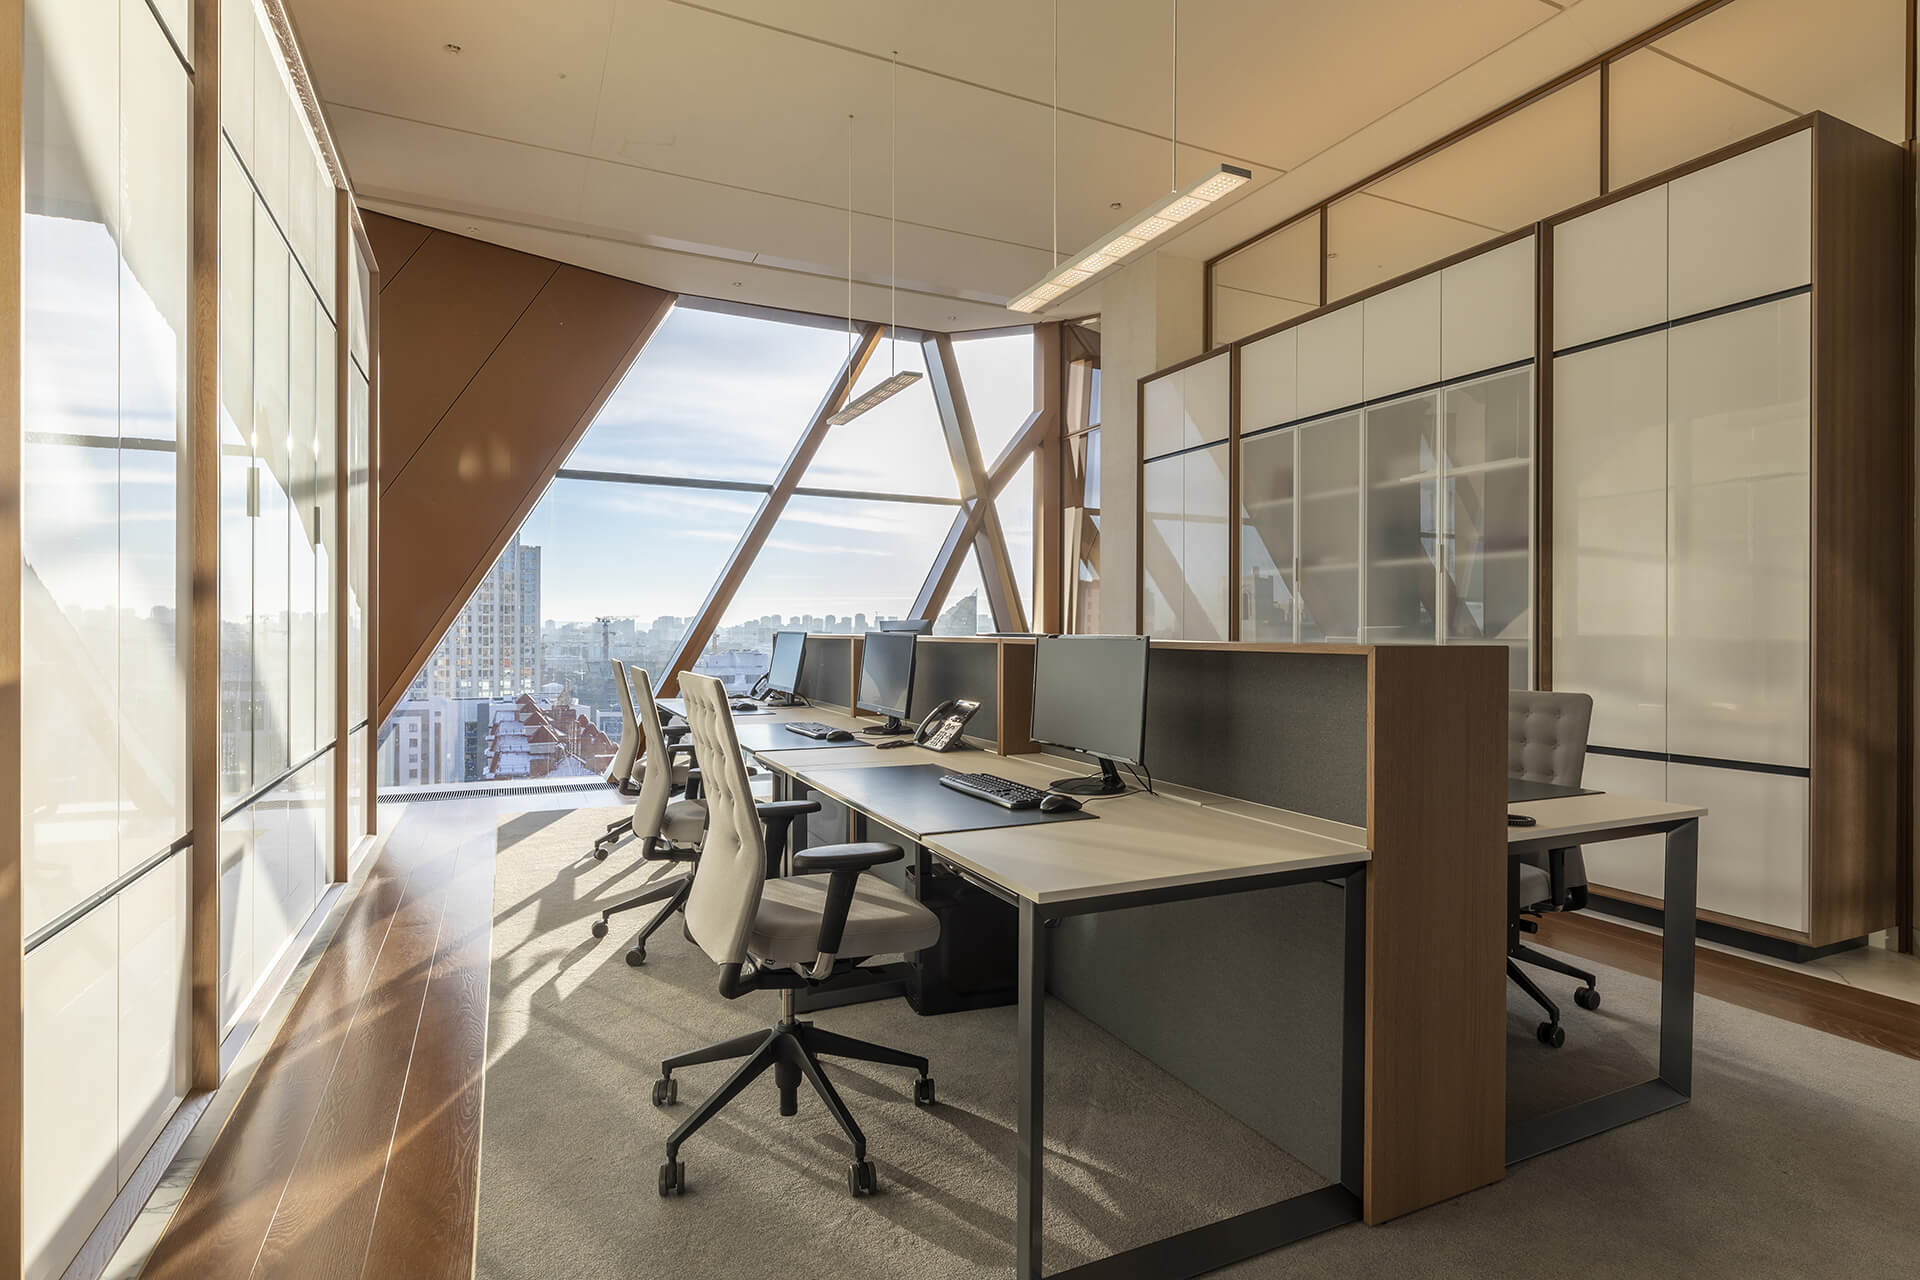 Typical office room for six | RCC Headquarters by Foster + Partners | STIRworld